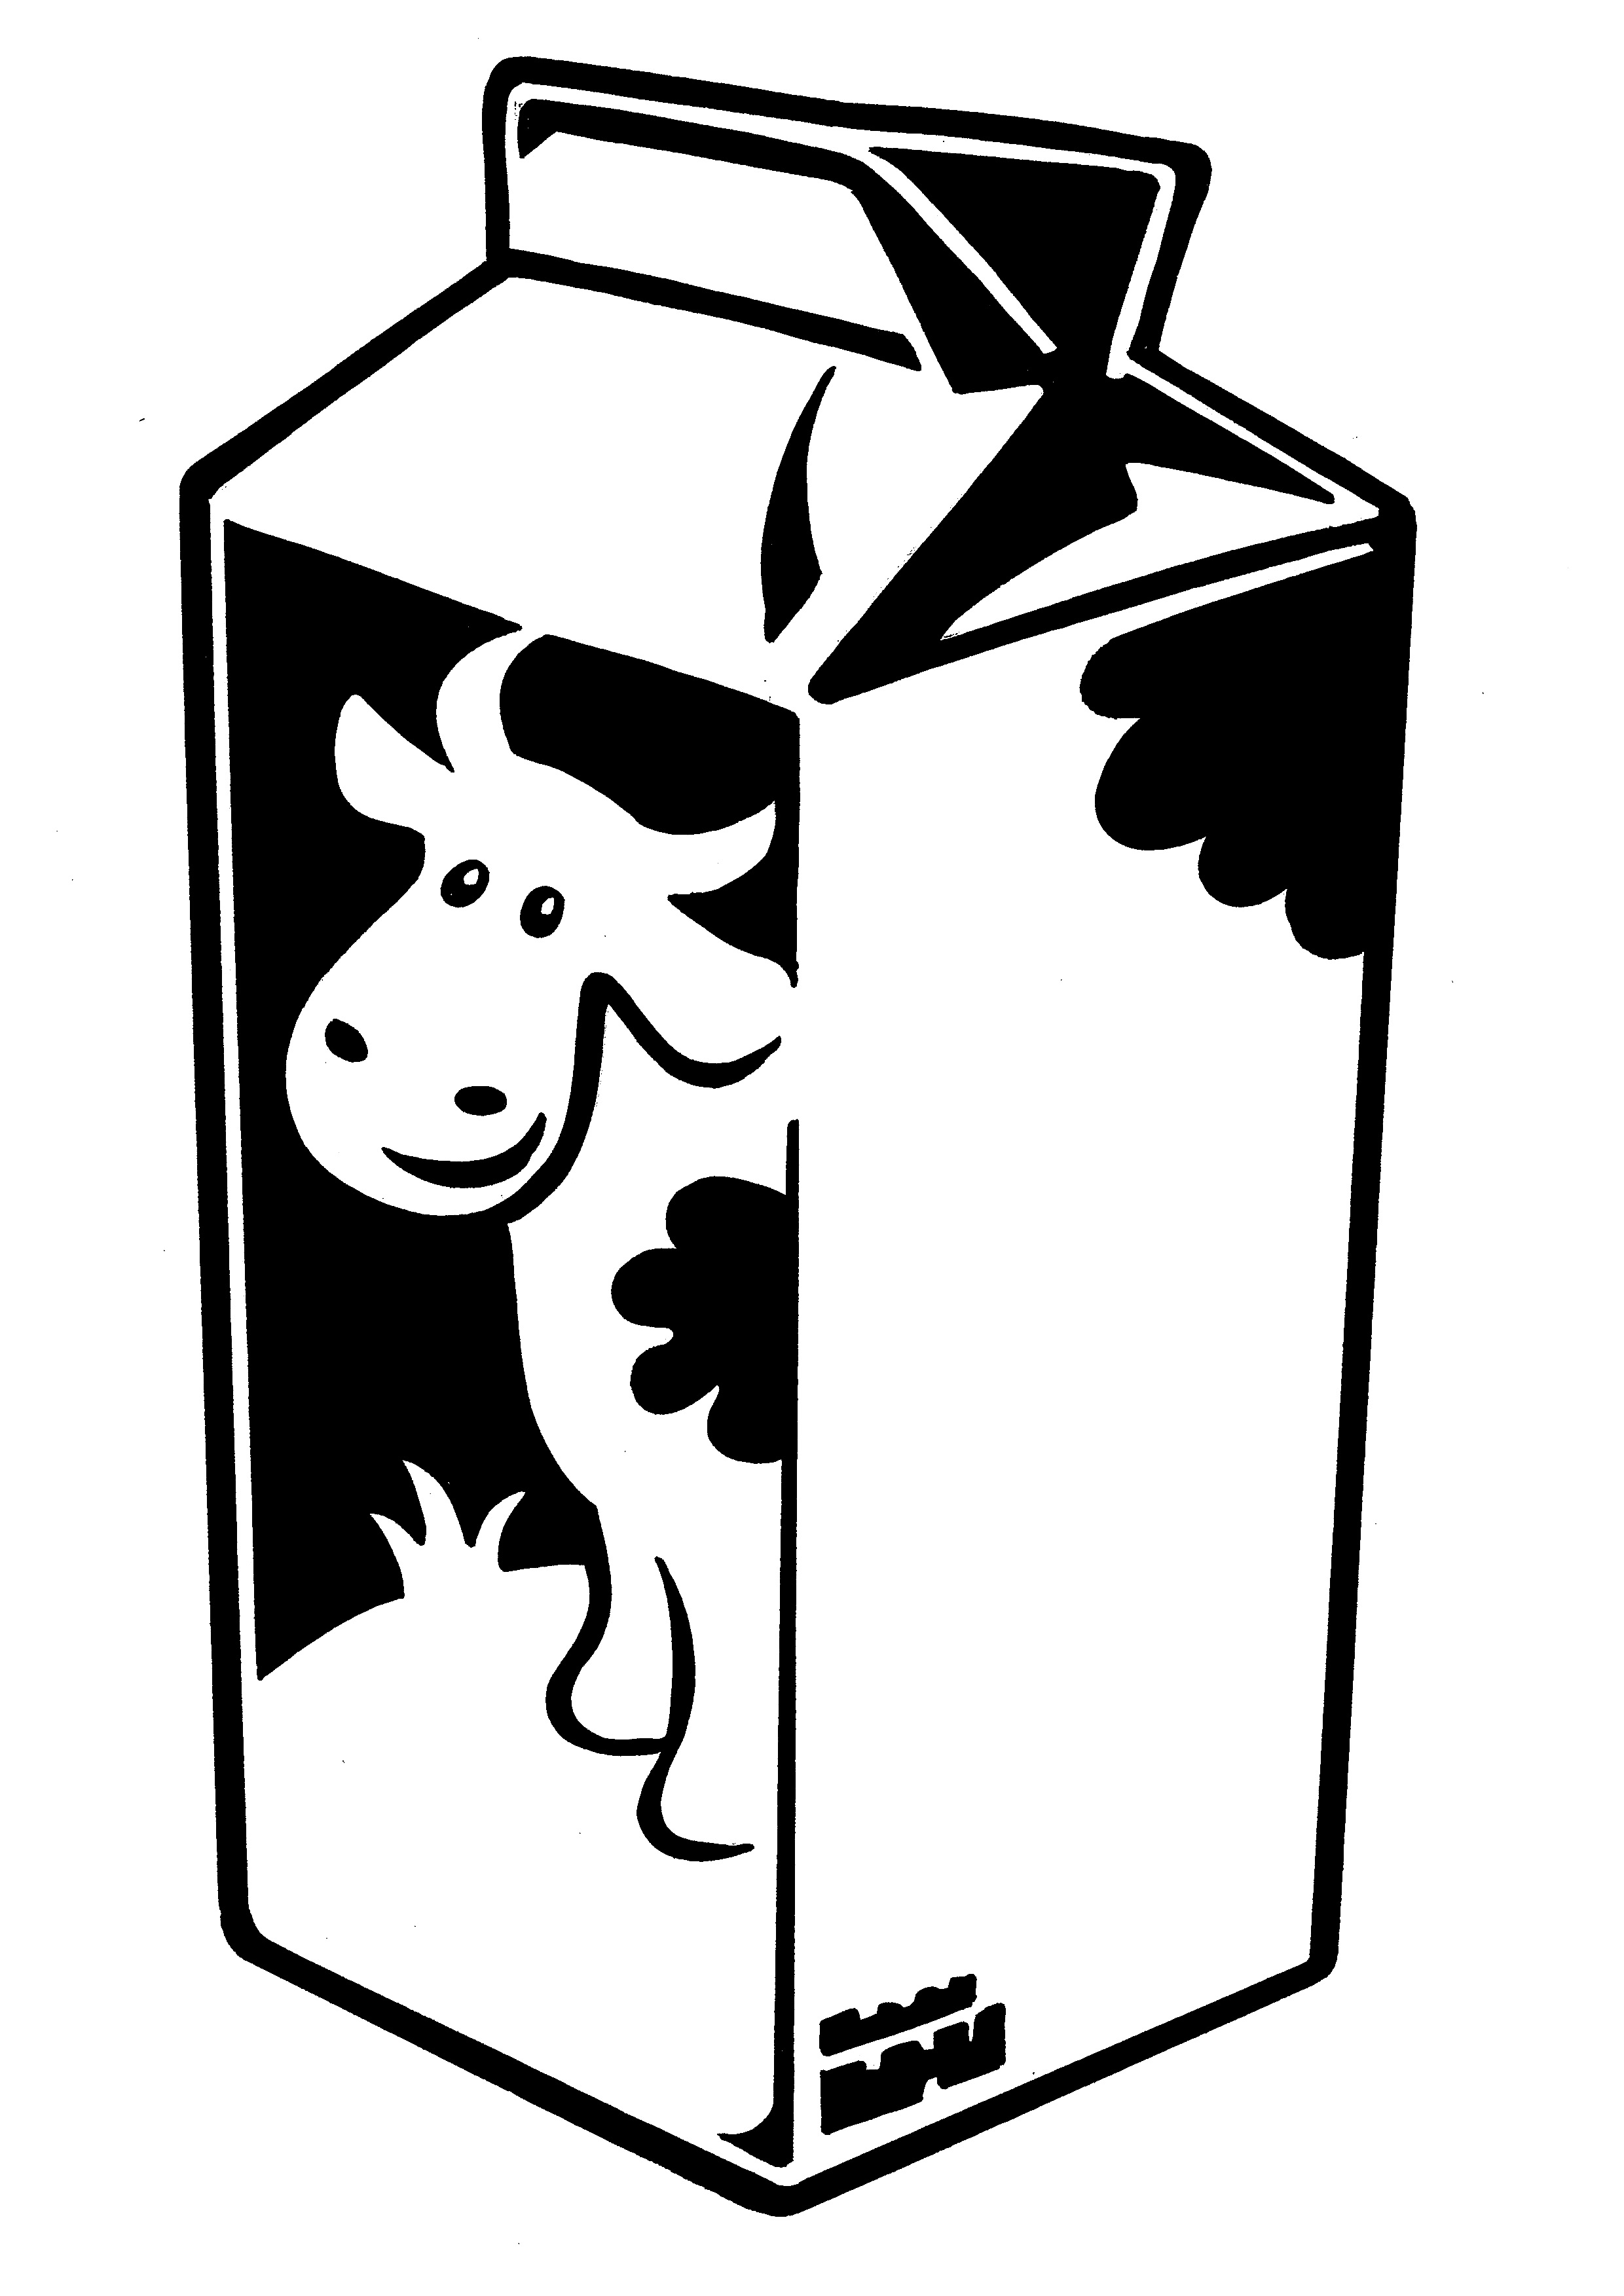 Milk clipart #3, Download drawings